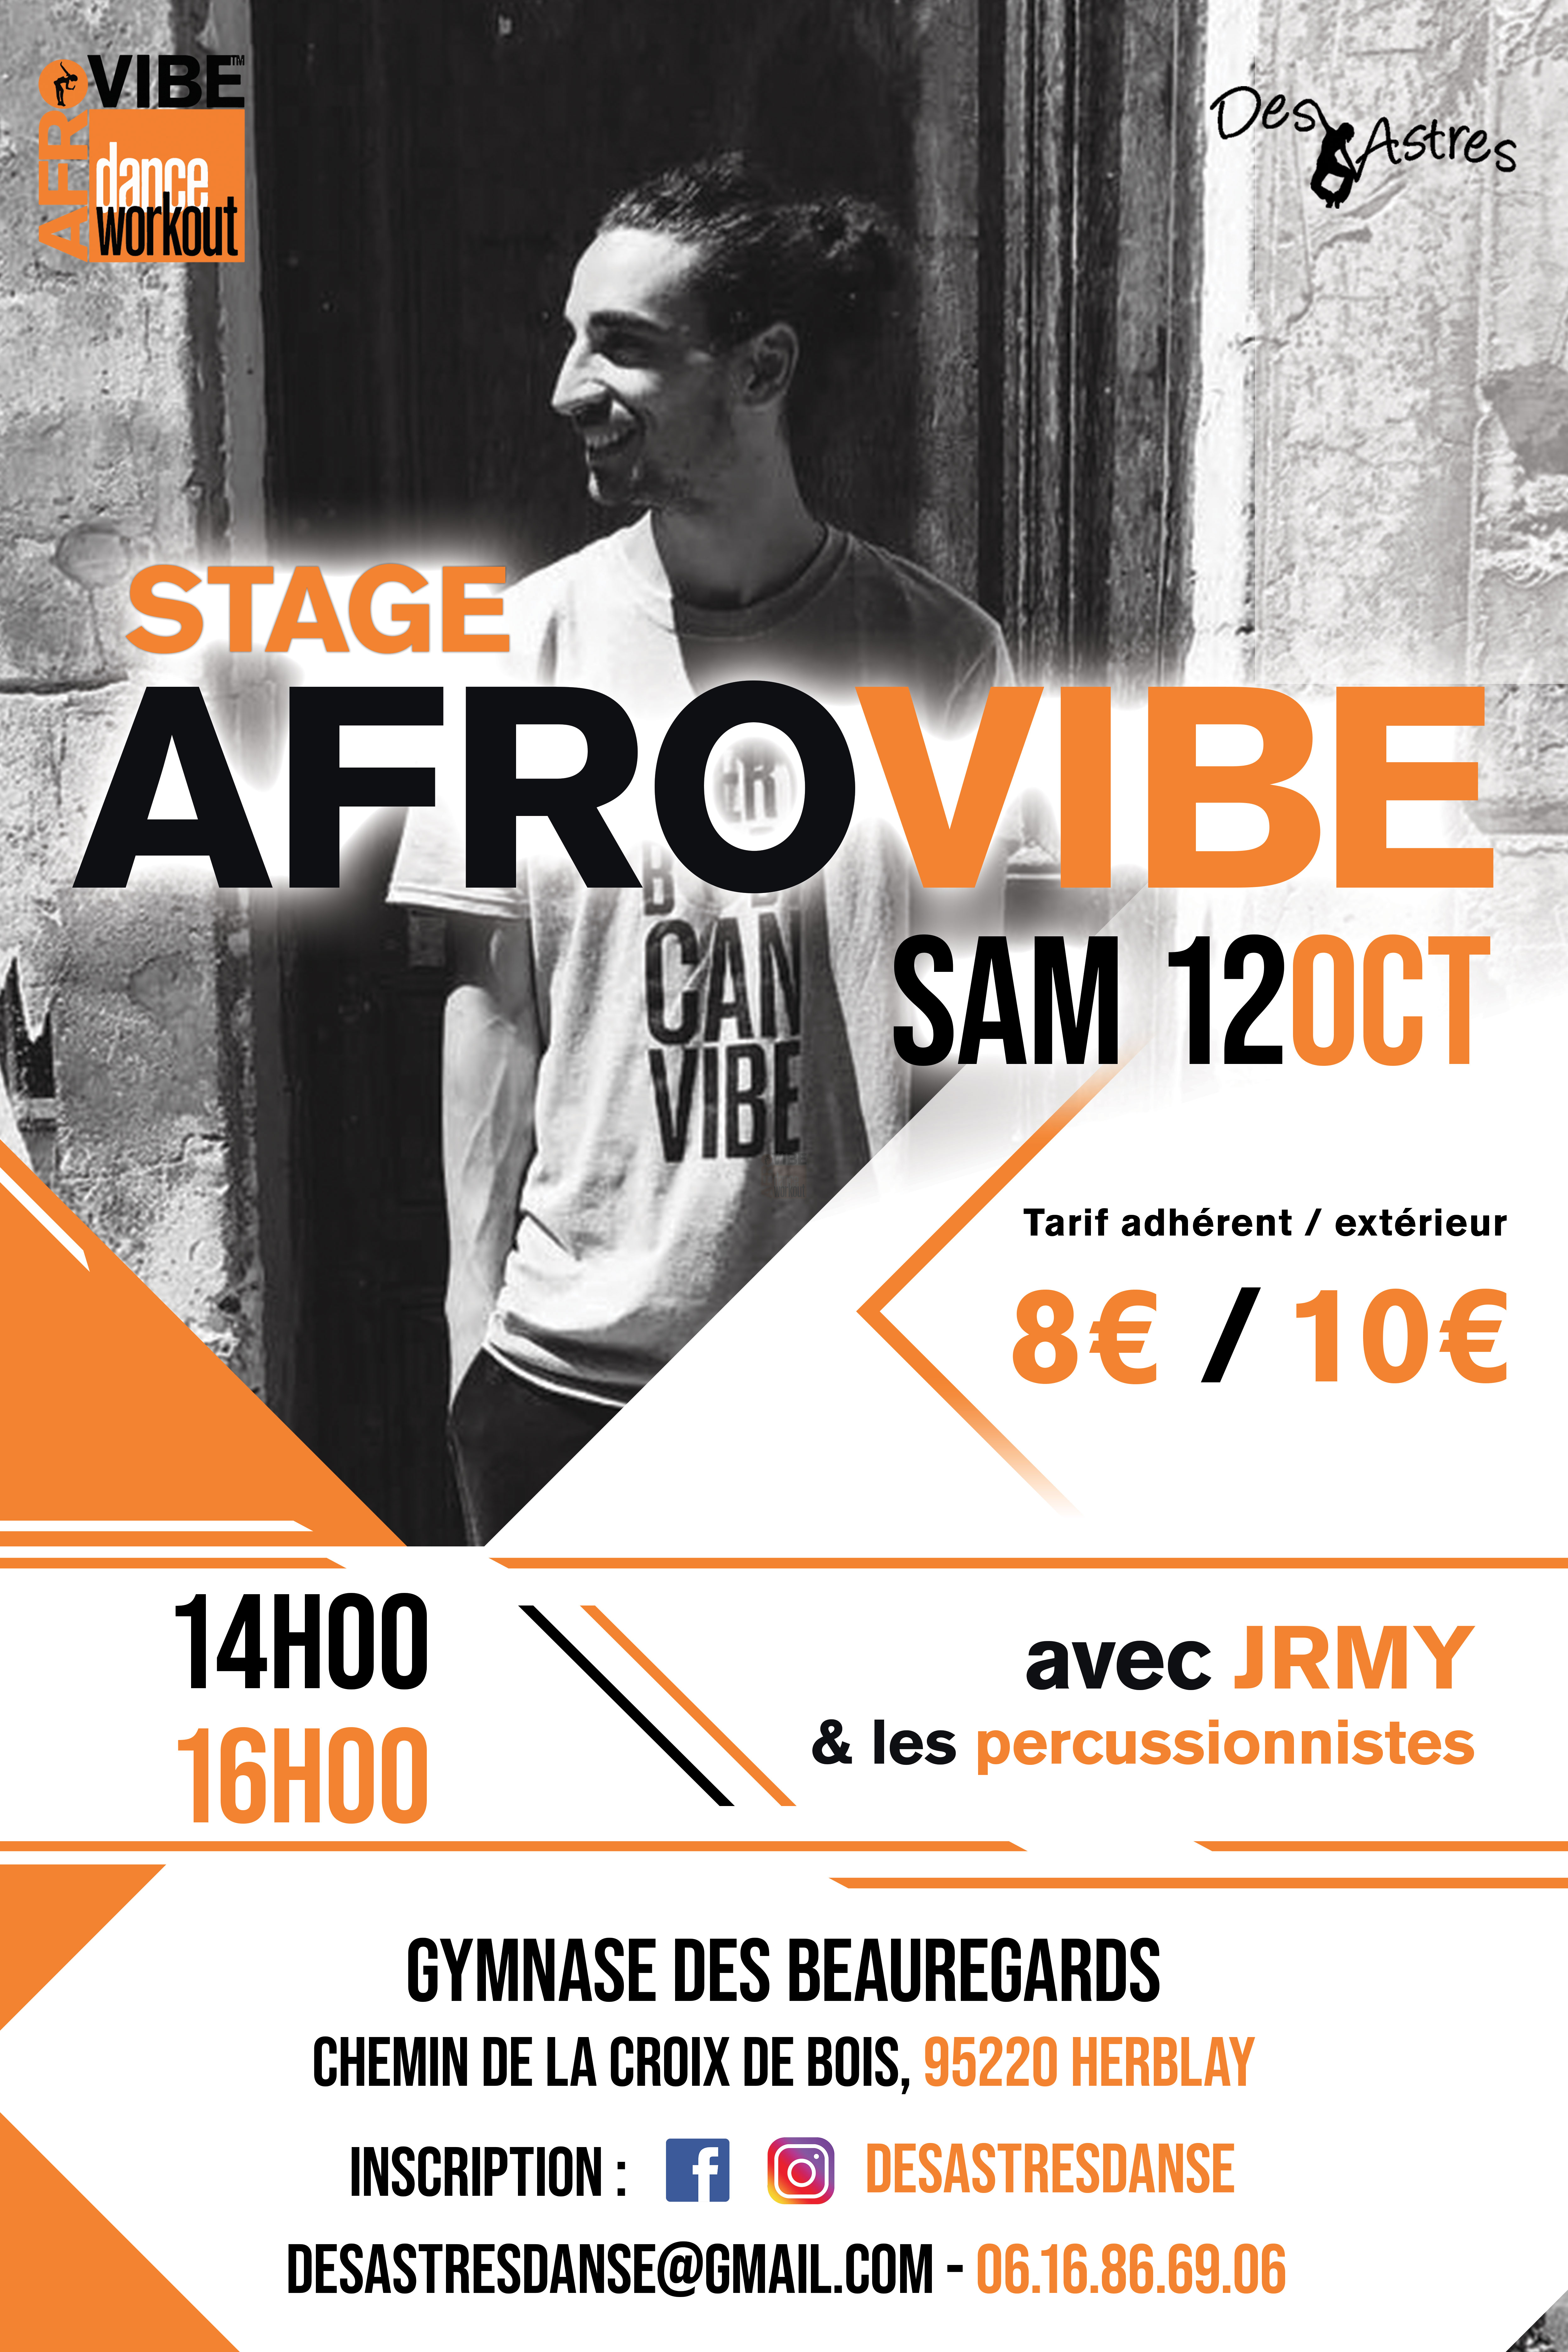 stage afrovibe des astres